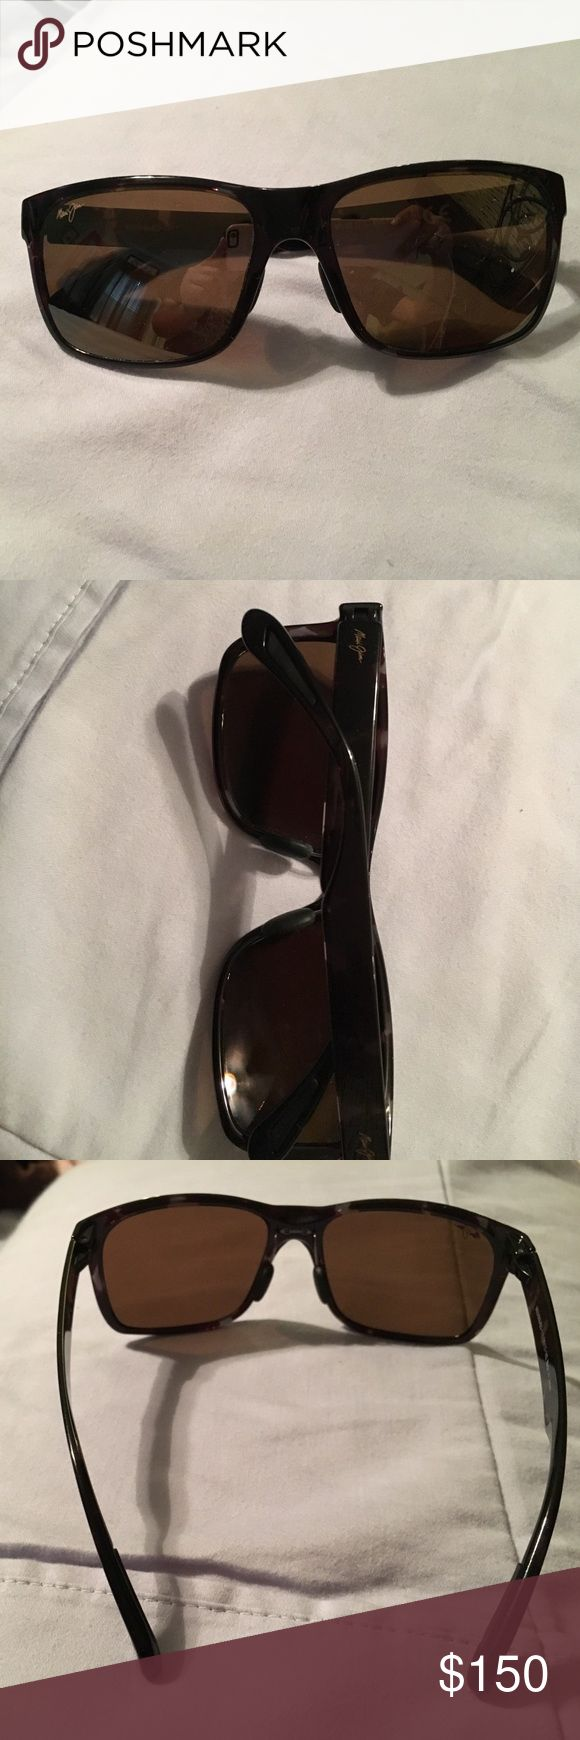 Women's Maui Jim sunglasses Maui Jim polarized sunglasses with brown lenses. Only been worn 1 time. They will come with both cases that they were purchased with. Maui Jim Accessories Sunglasses